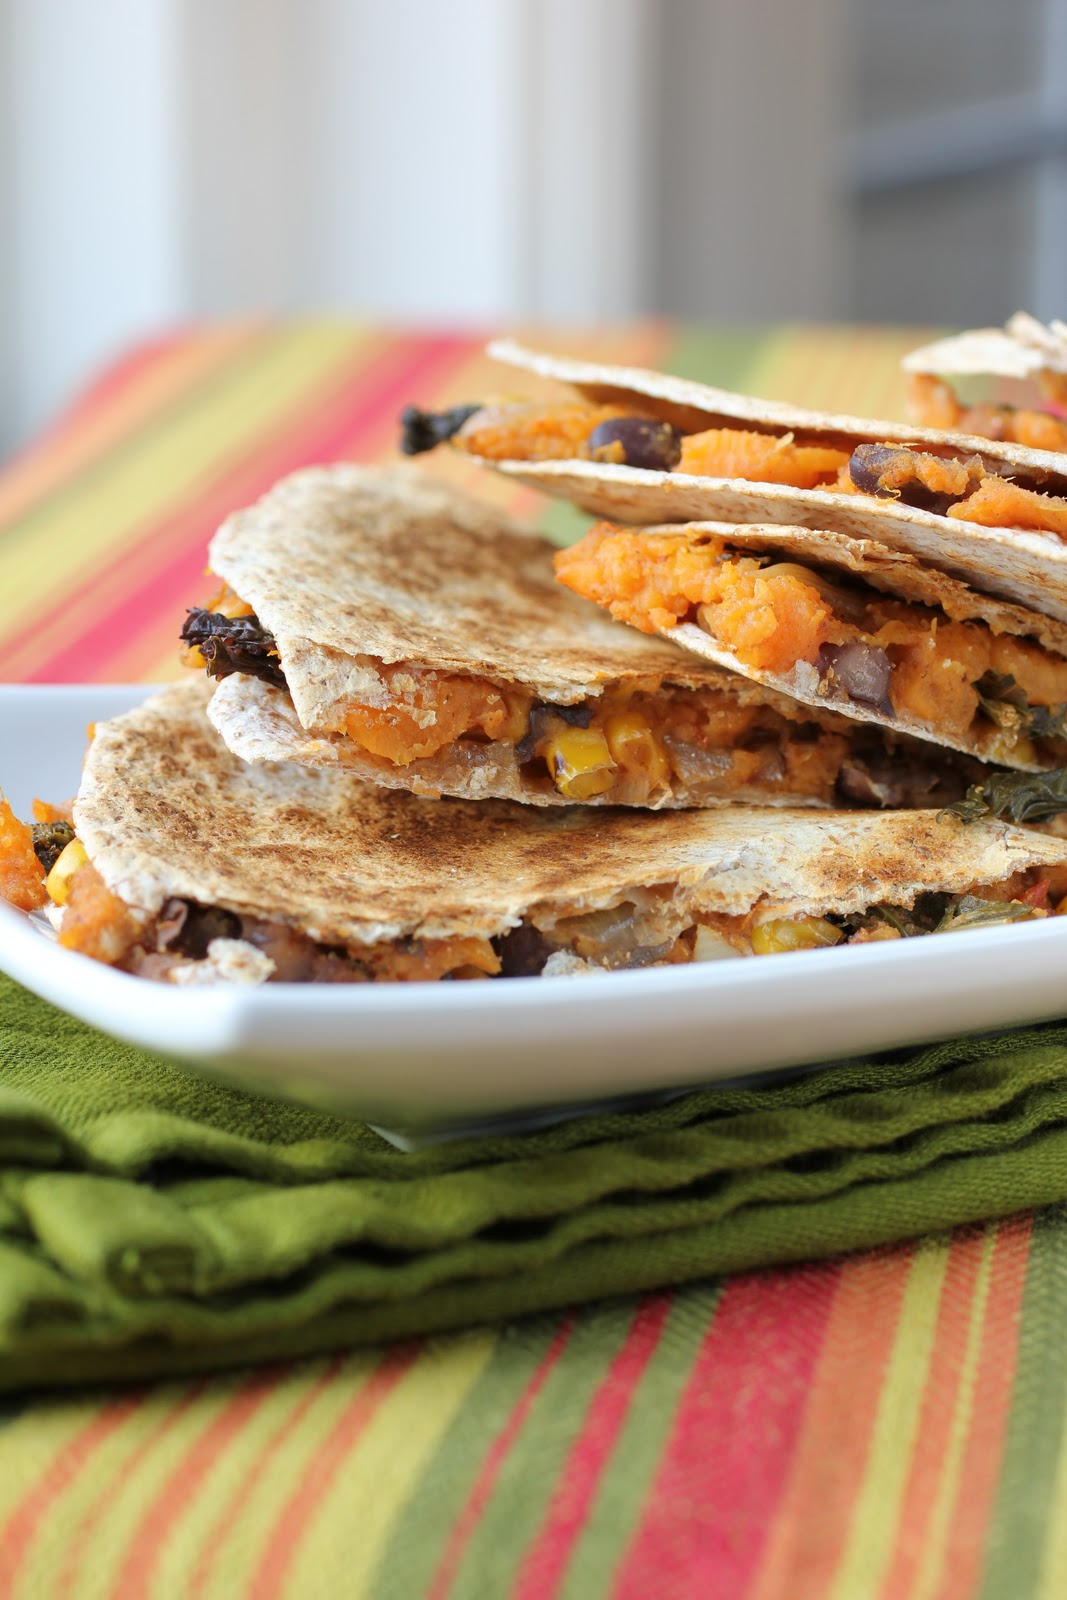 Healthy Girl's Kitchen: Winner Announced and Sweet Potato ...